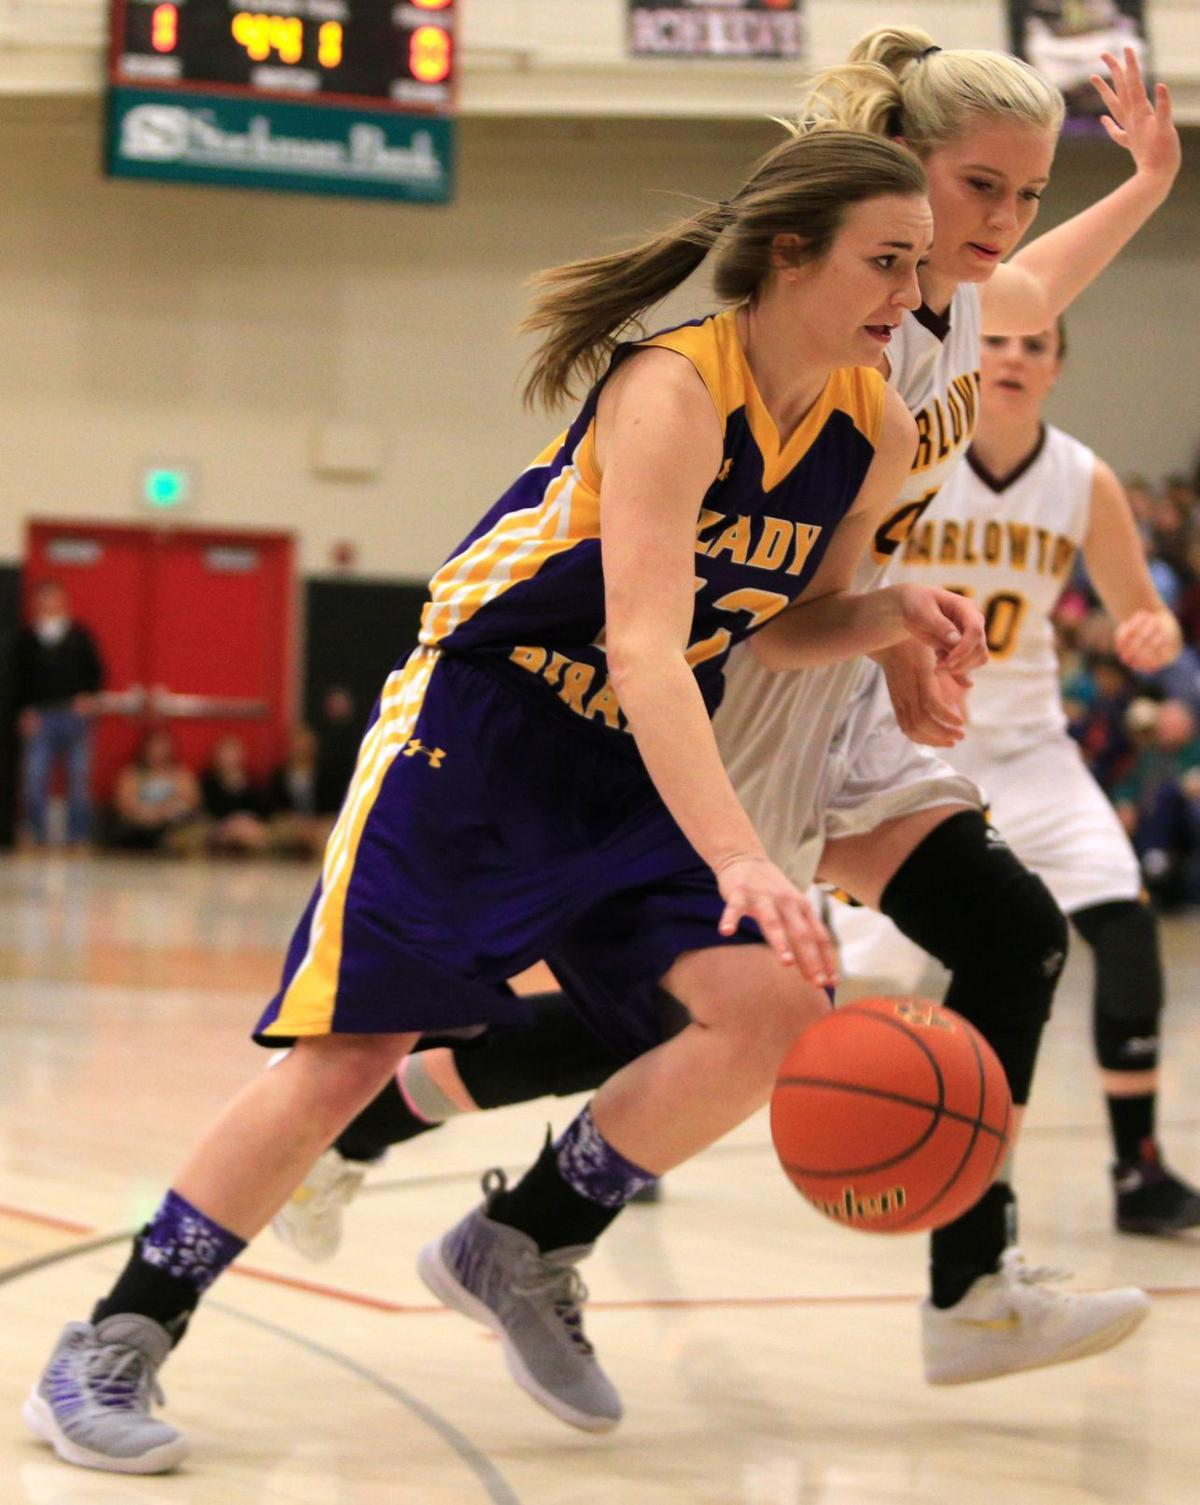 harlowton women View the schedule, scores, league standings and articles for the harlowton/ryegate engineers girls basketball team on maxpreps.